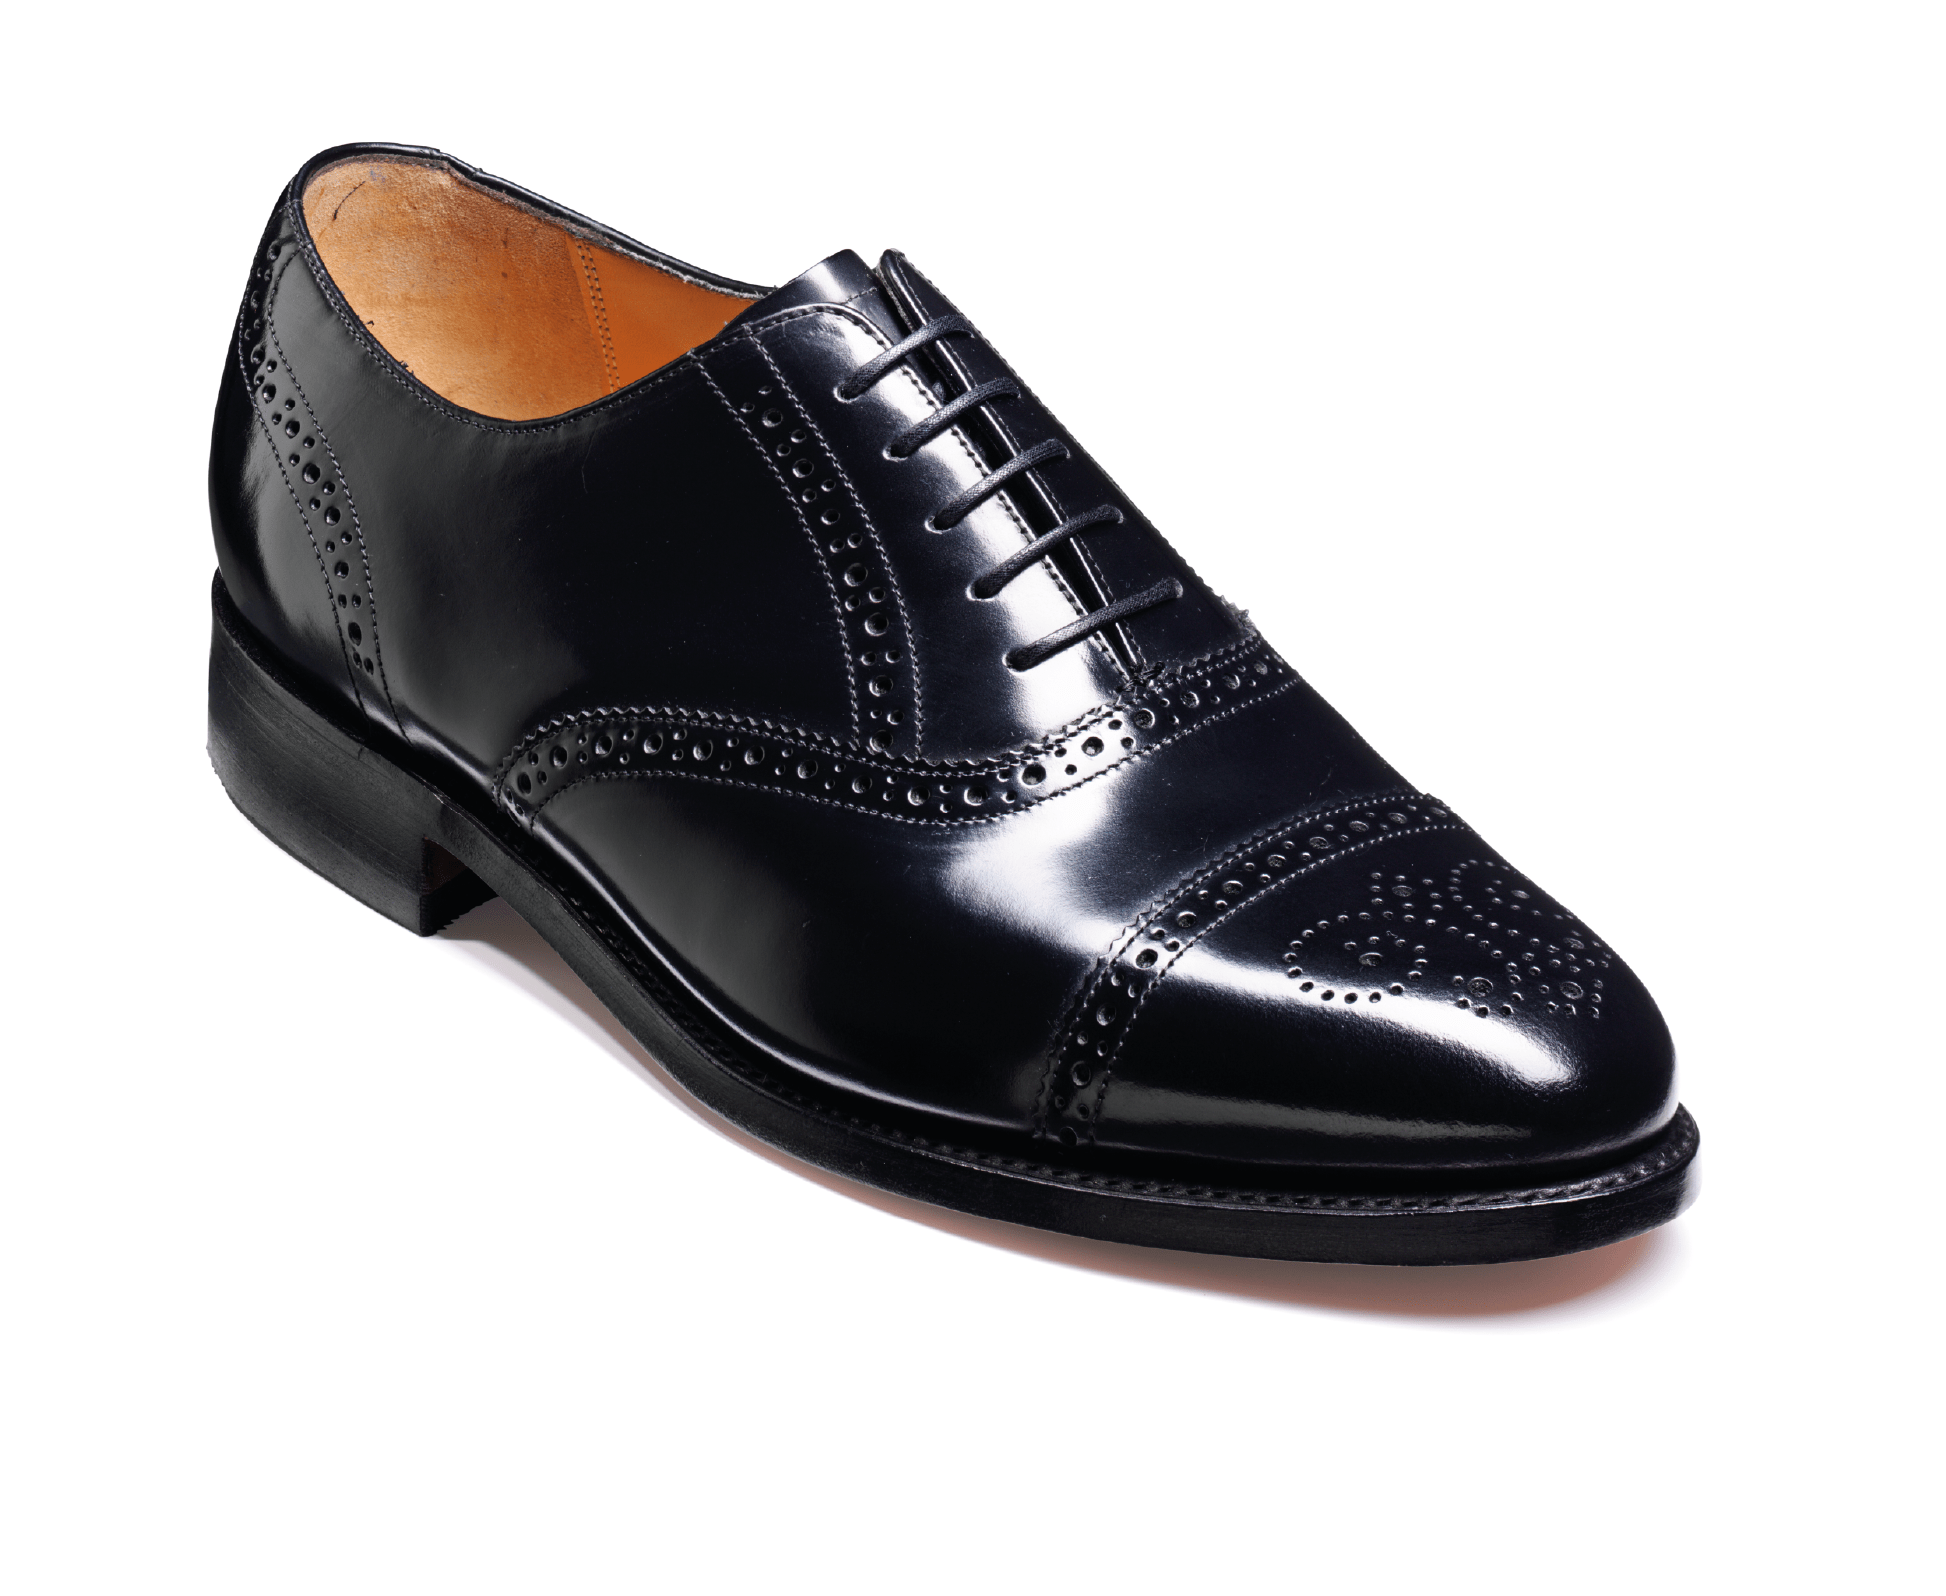 Barker Alfred-Black-British Shoe Company